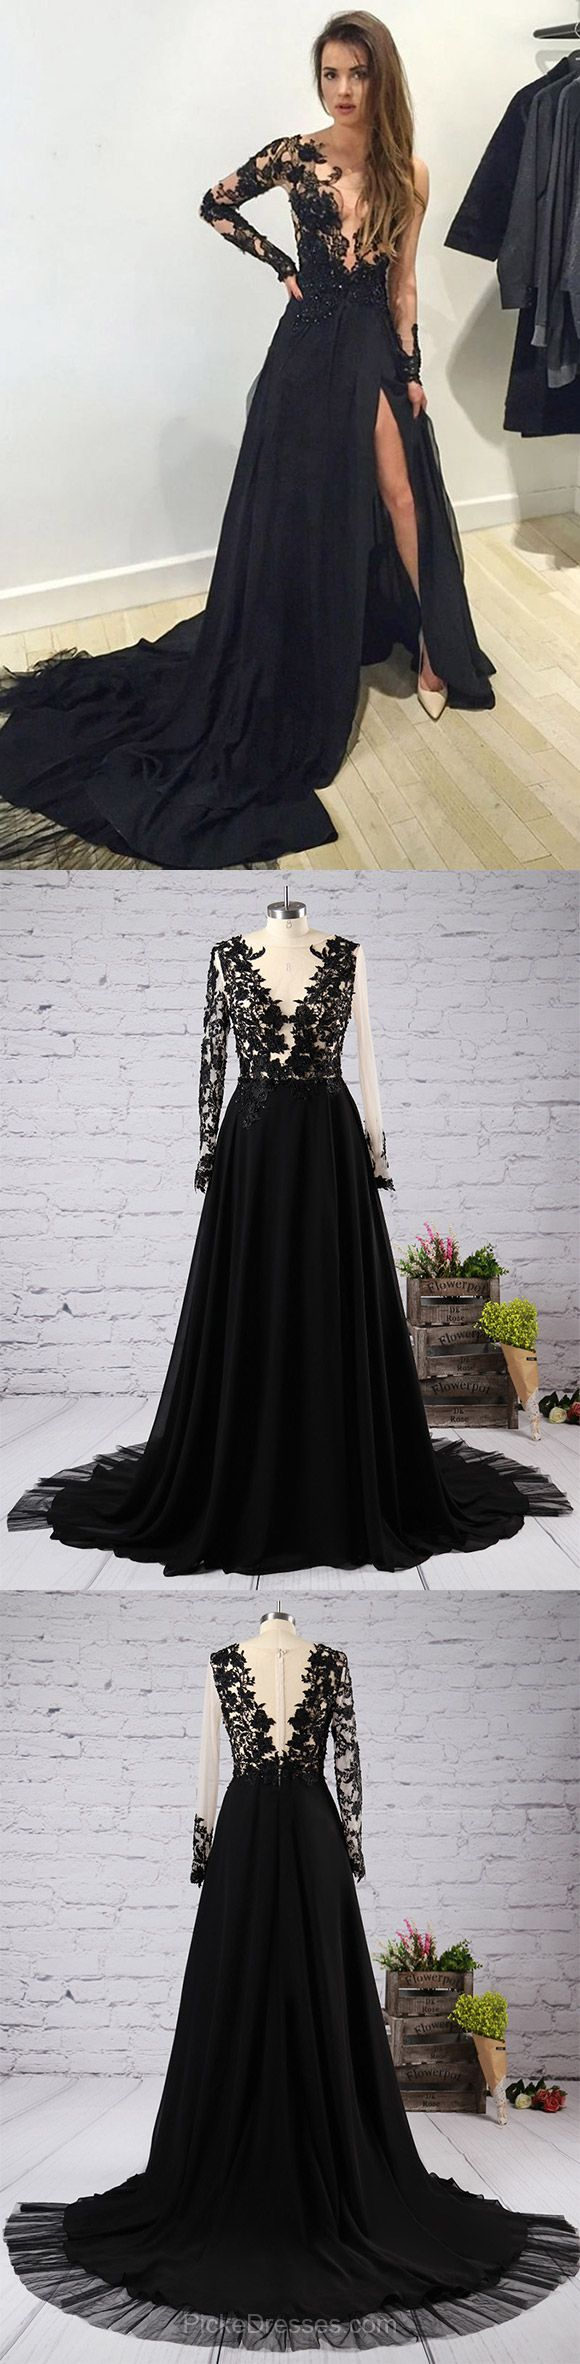 Long sleeve scoop neck tulle appliques lace court train black prom